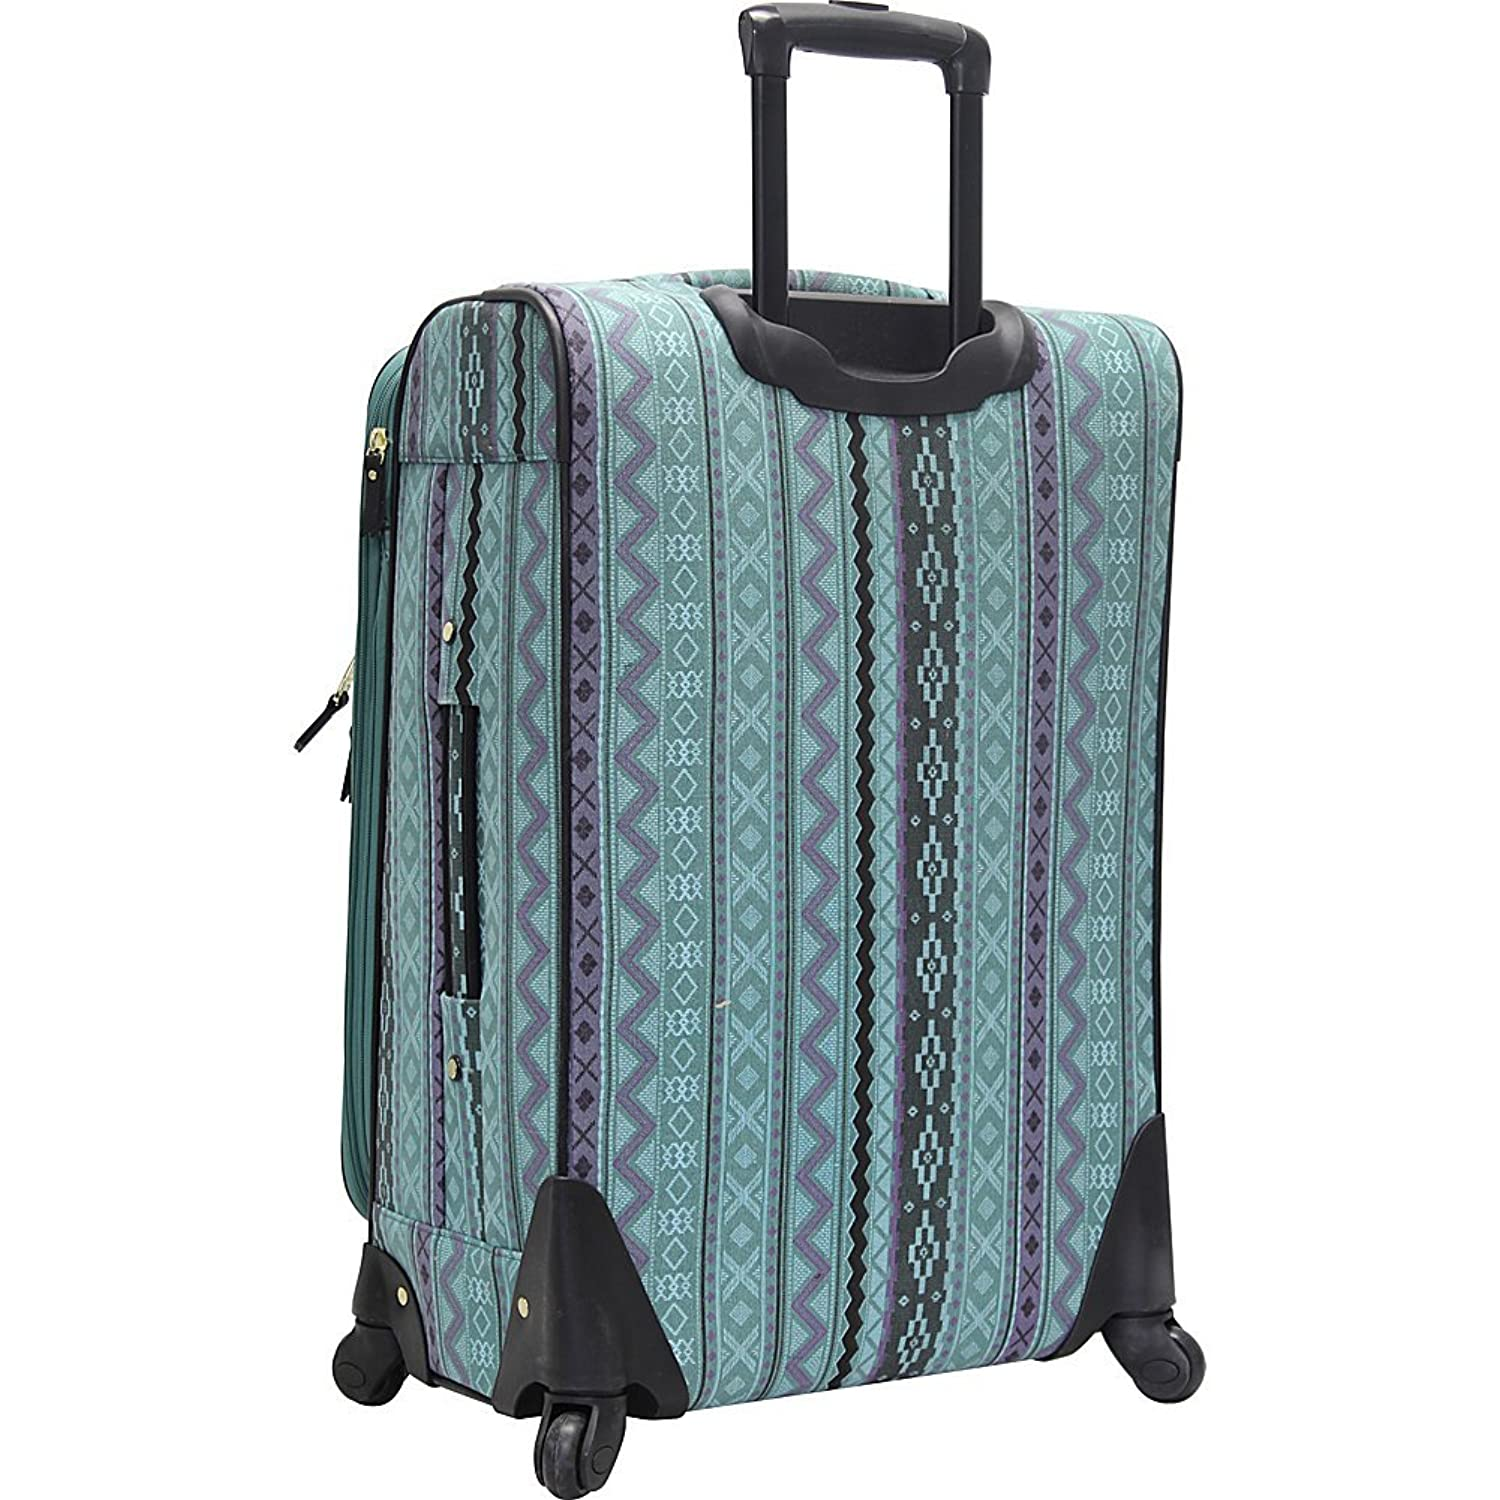 Amazon.com | Steve Madden Luggage Legends 24"|1500|1500|?|False|02e0c11cdf12e5eb11d95631d71b0e5d|False|UNLIKELY|0.3233417868614197